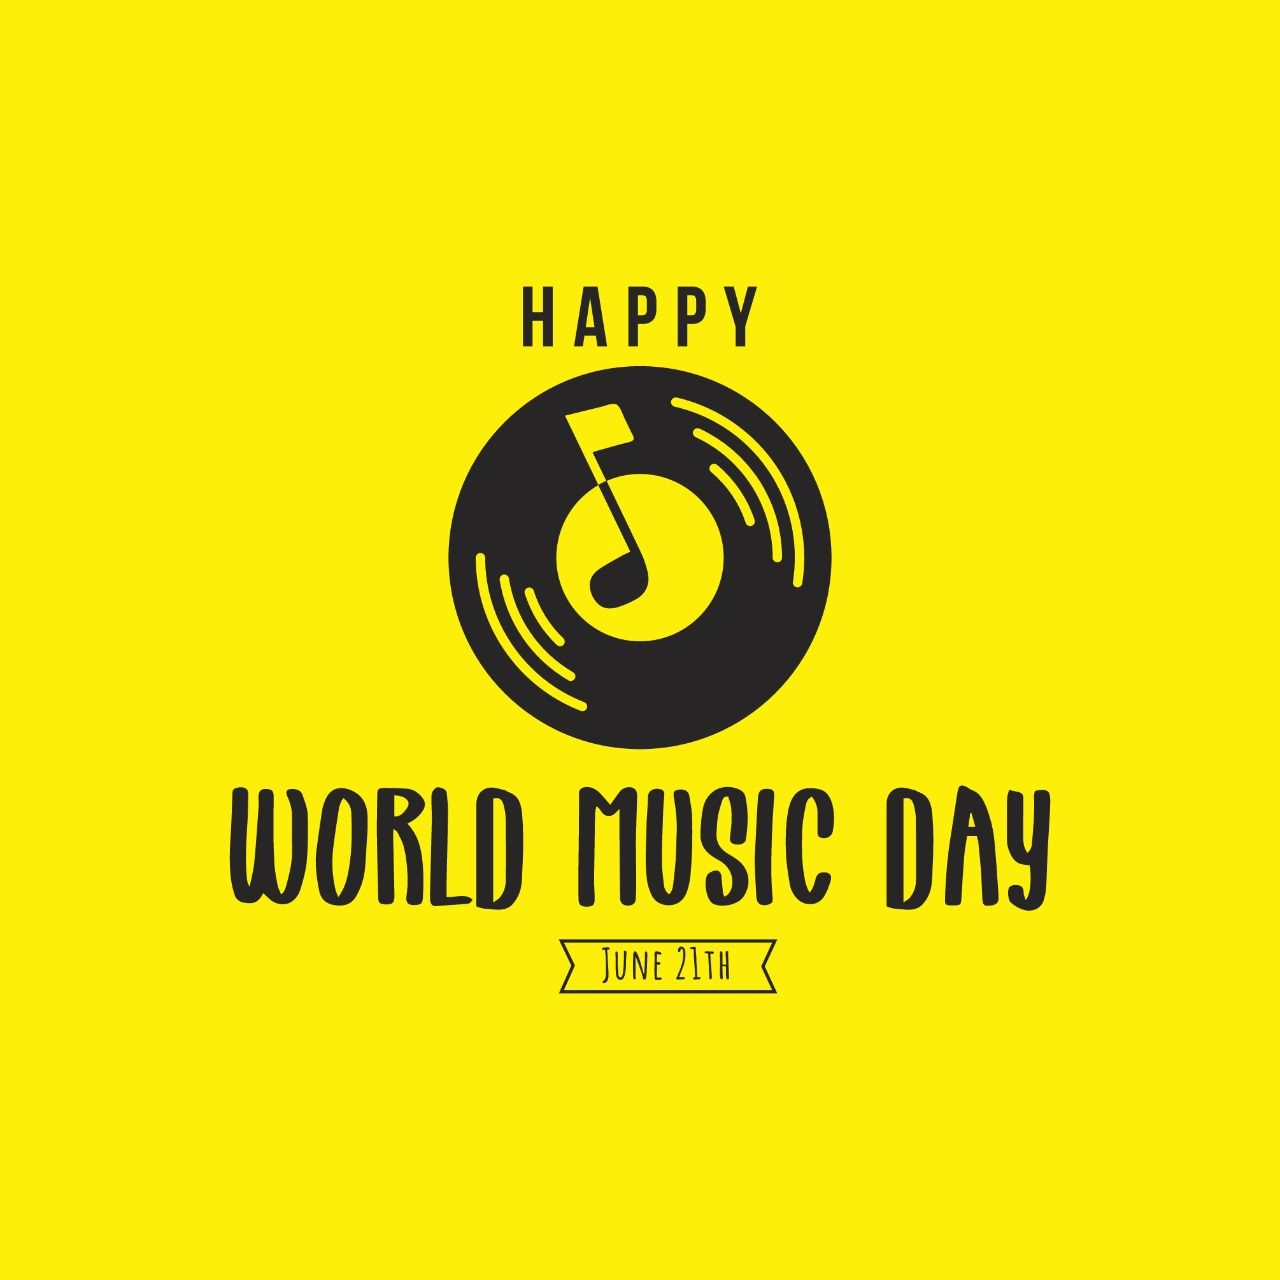 World Music Day 2020 Quotes Wishes Images Wallpapers Messages 1280x1280